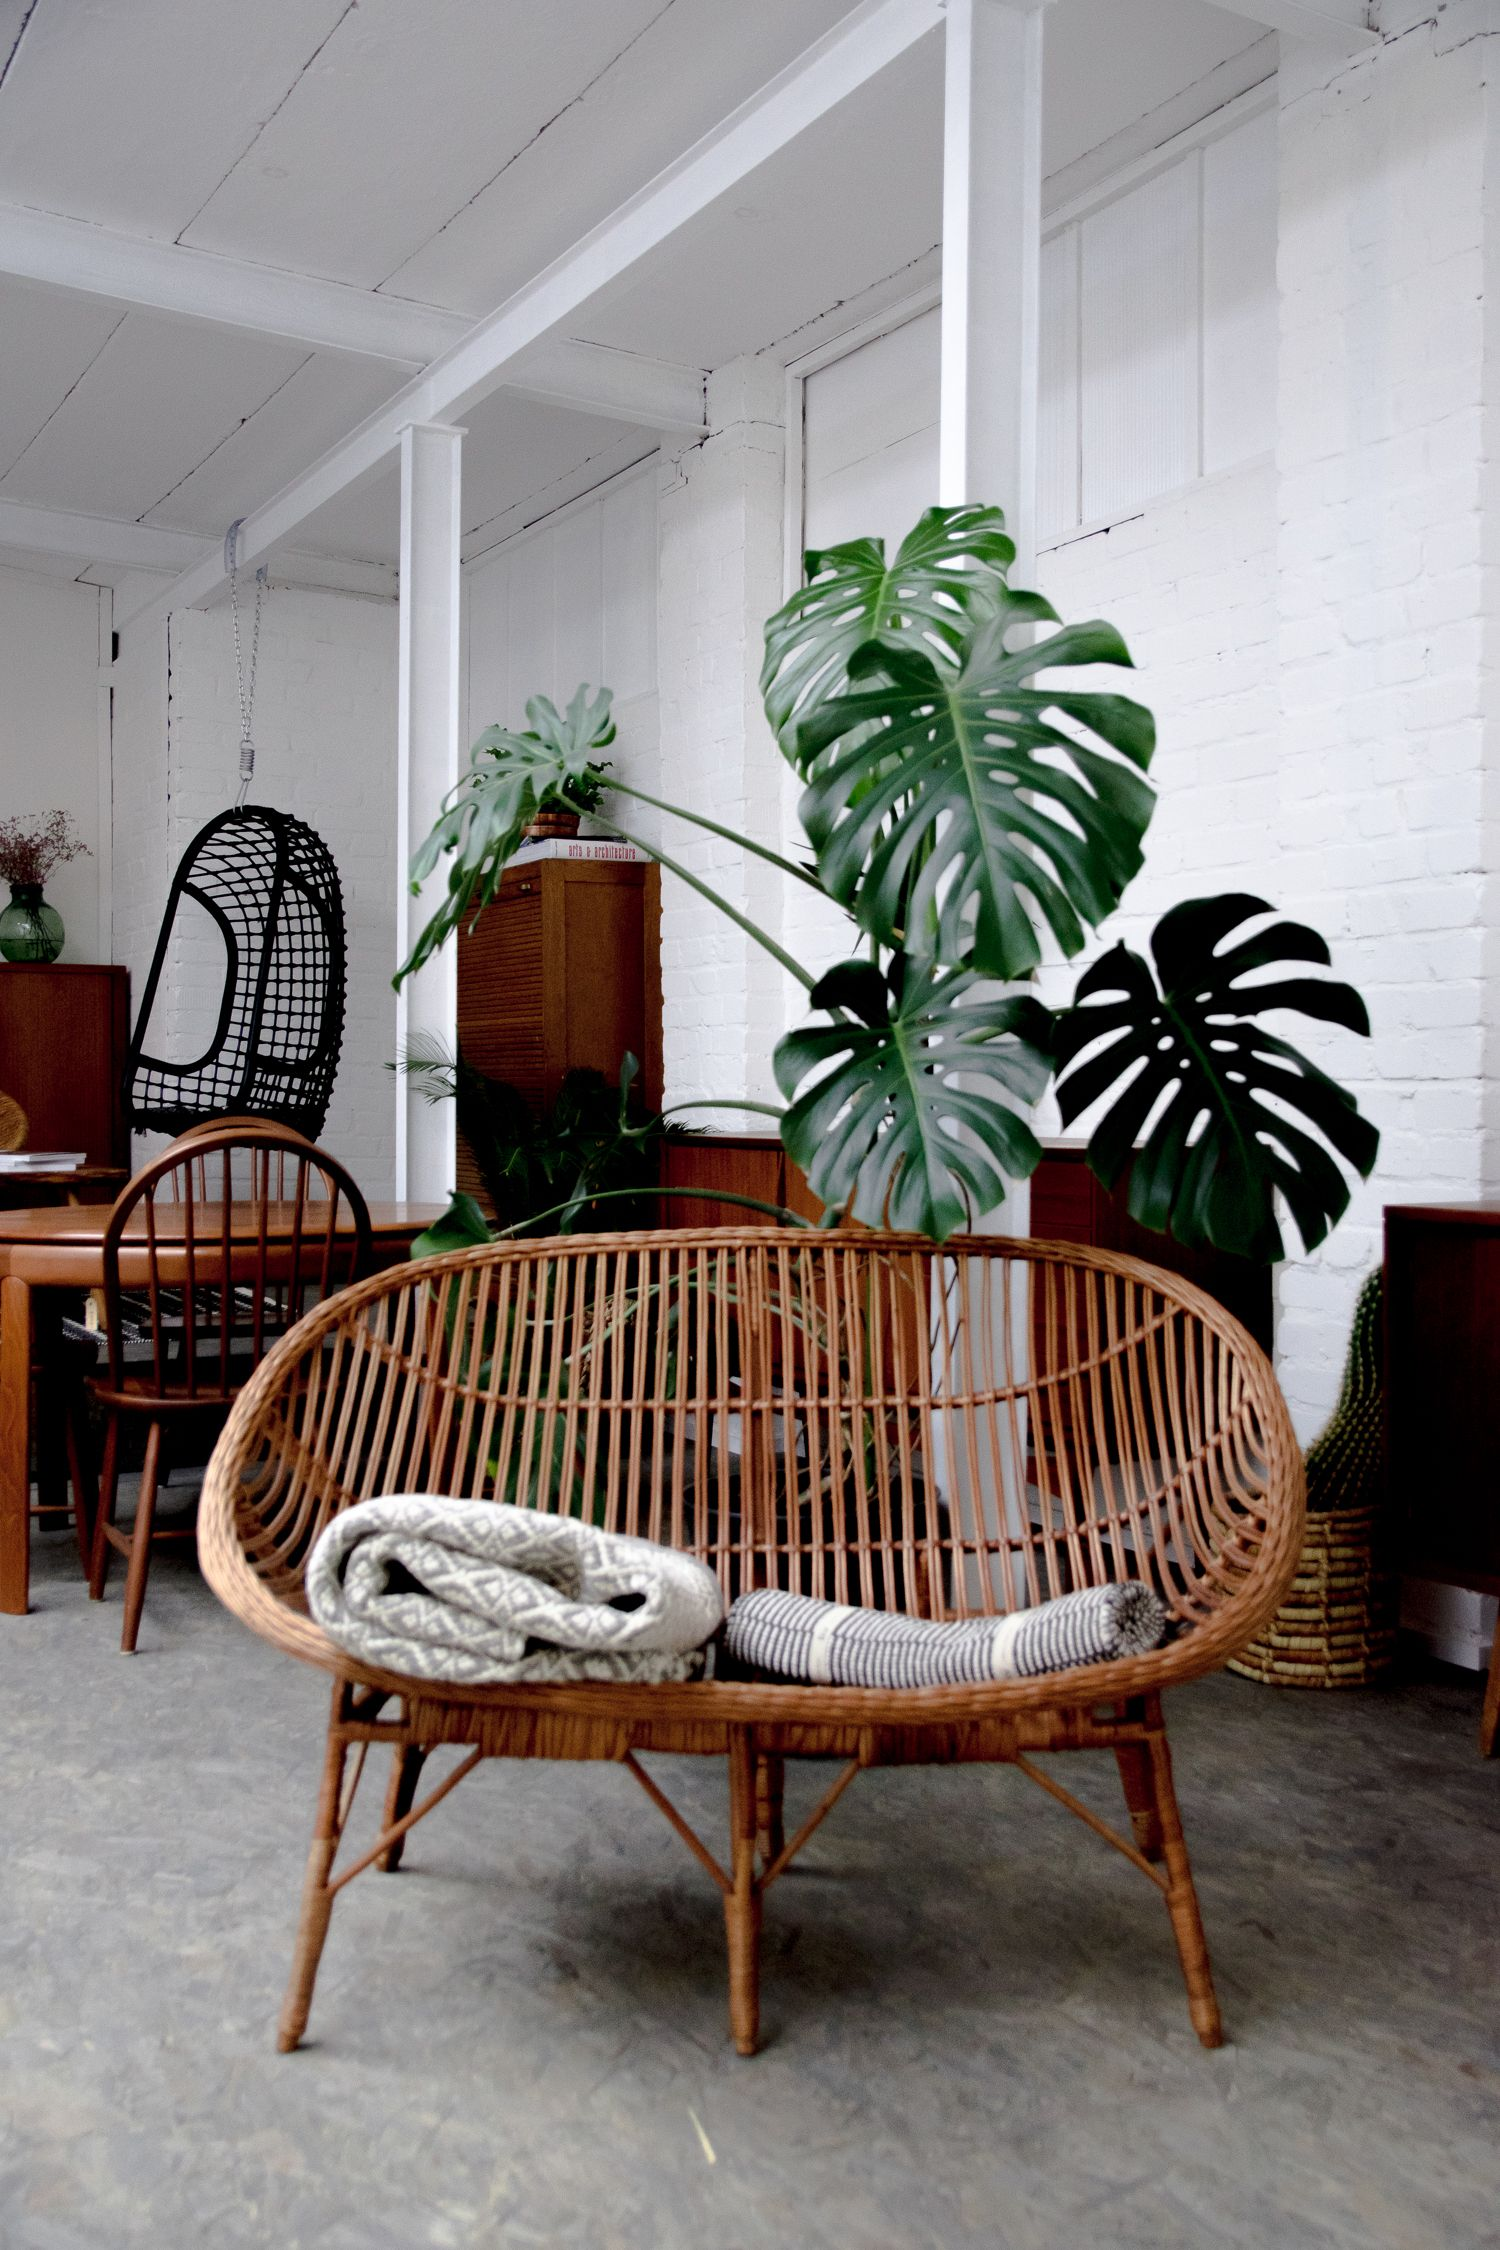 Wohnzimmer Deko Ideen Instagram Shopping Tipp Mill Vintage And Interior In Köln MÖbel